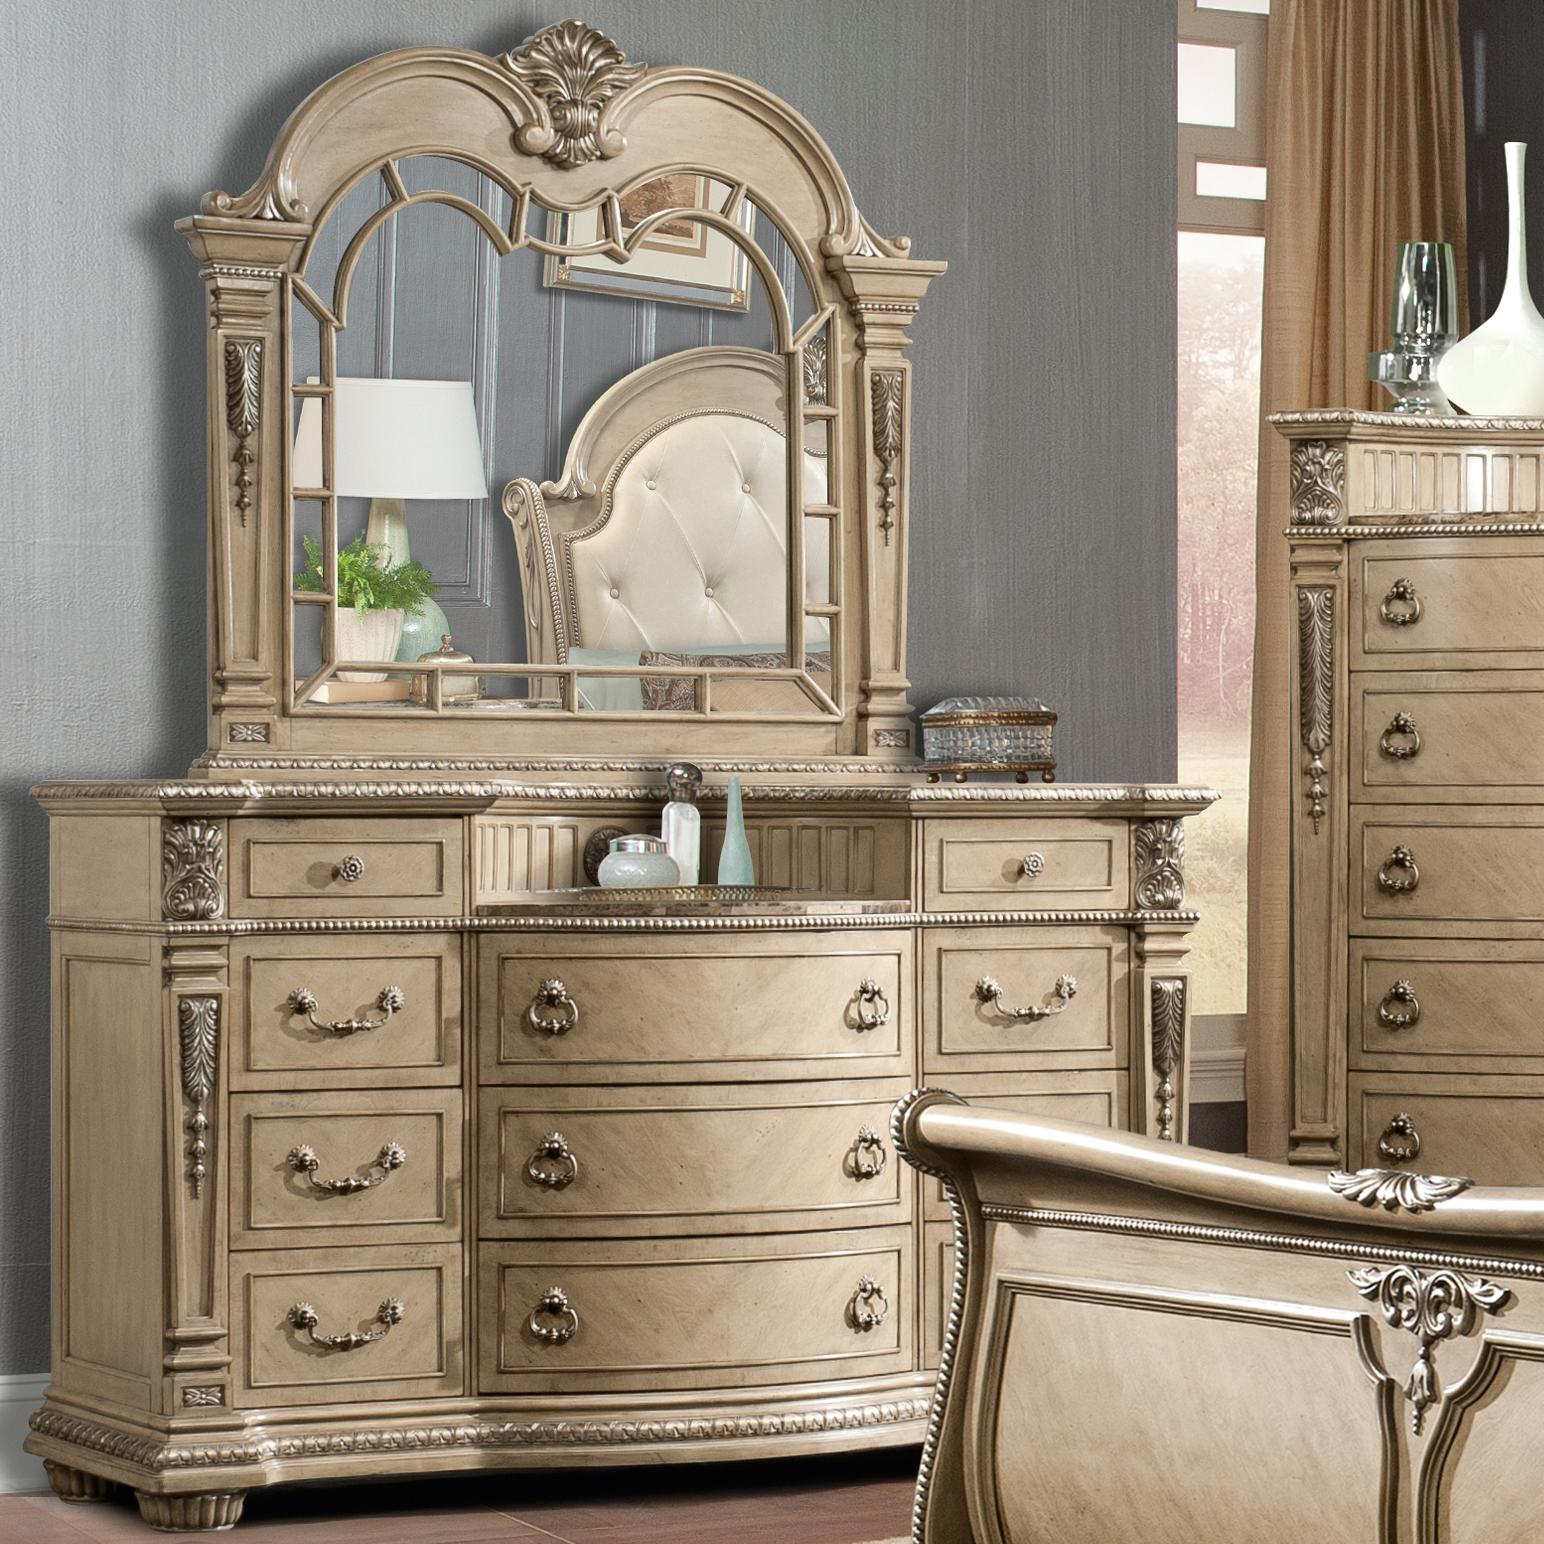 Davis direct monaco traditional elegantly carved dresser and mirror set great american home Design house furniture davis ca